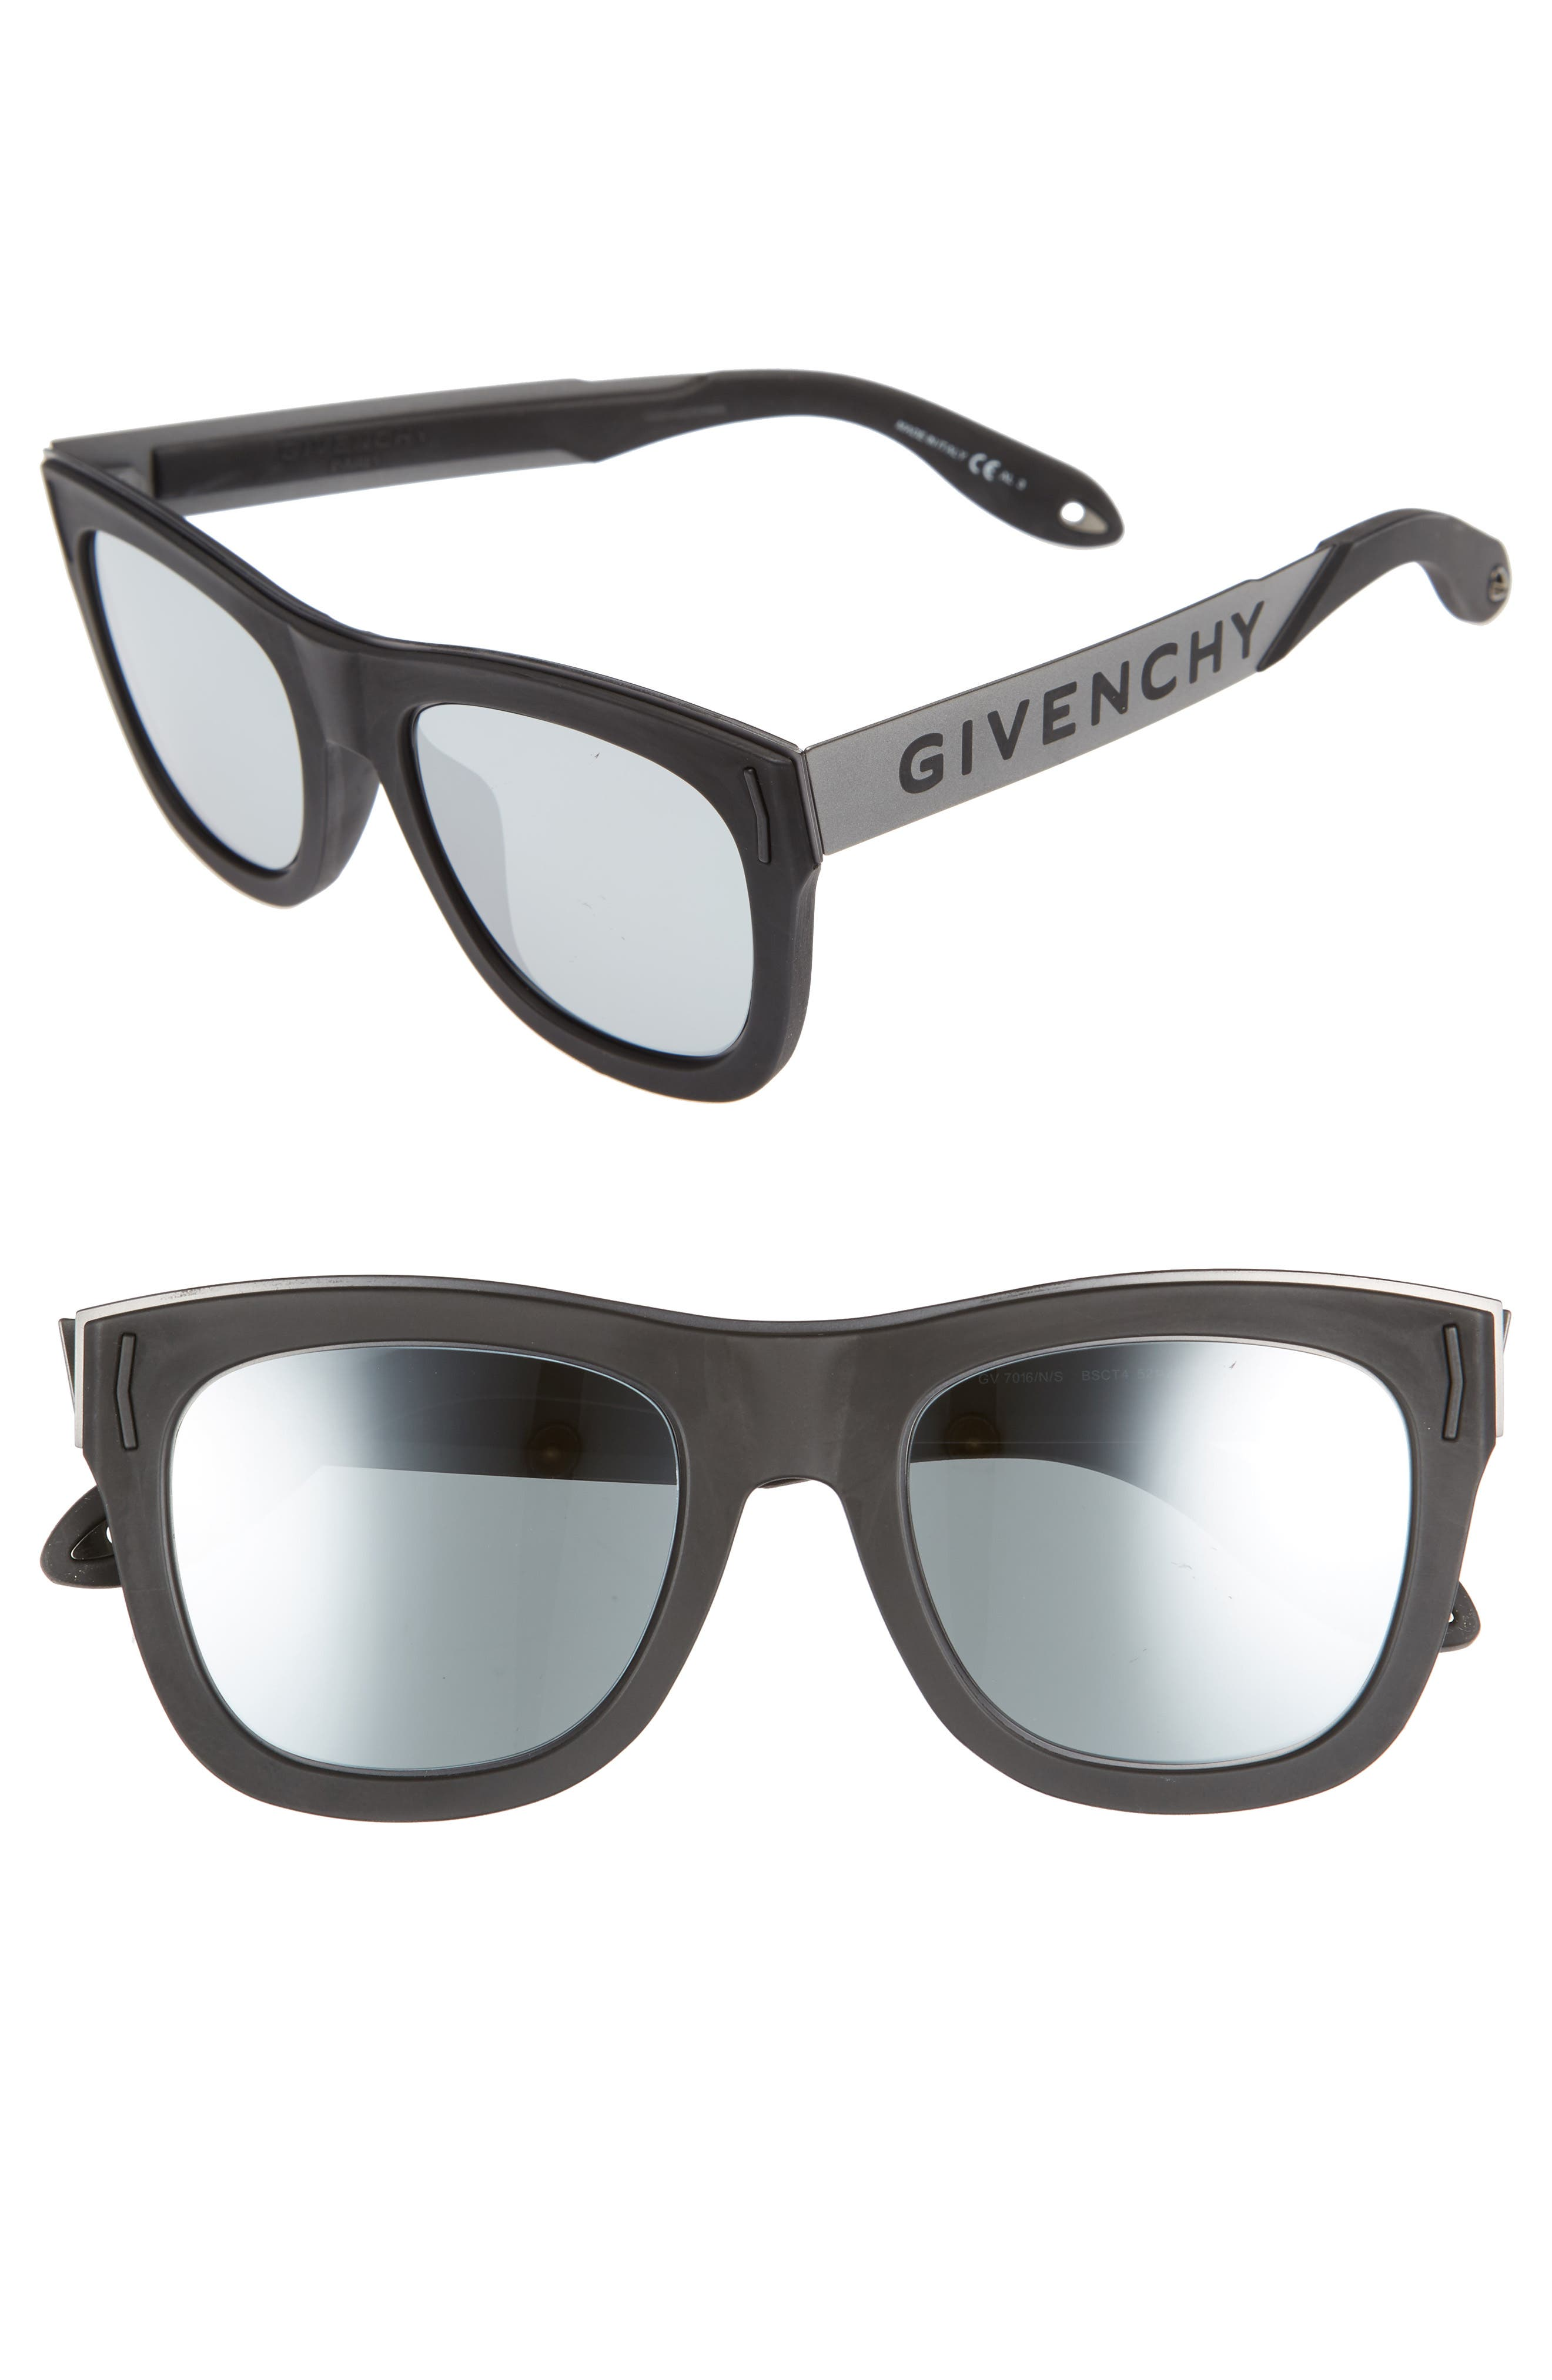 Main Image - Givenchy 52mm Gradient Lens Sunglasses